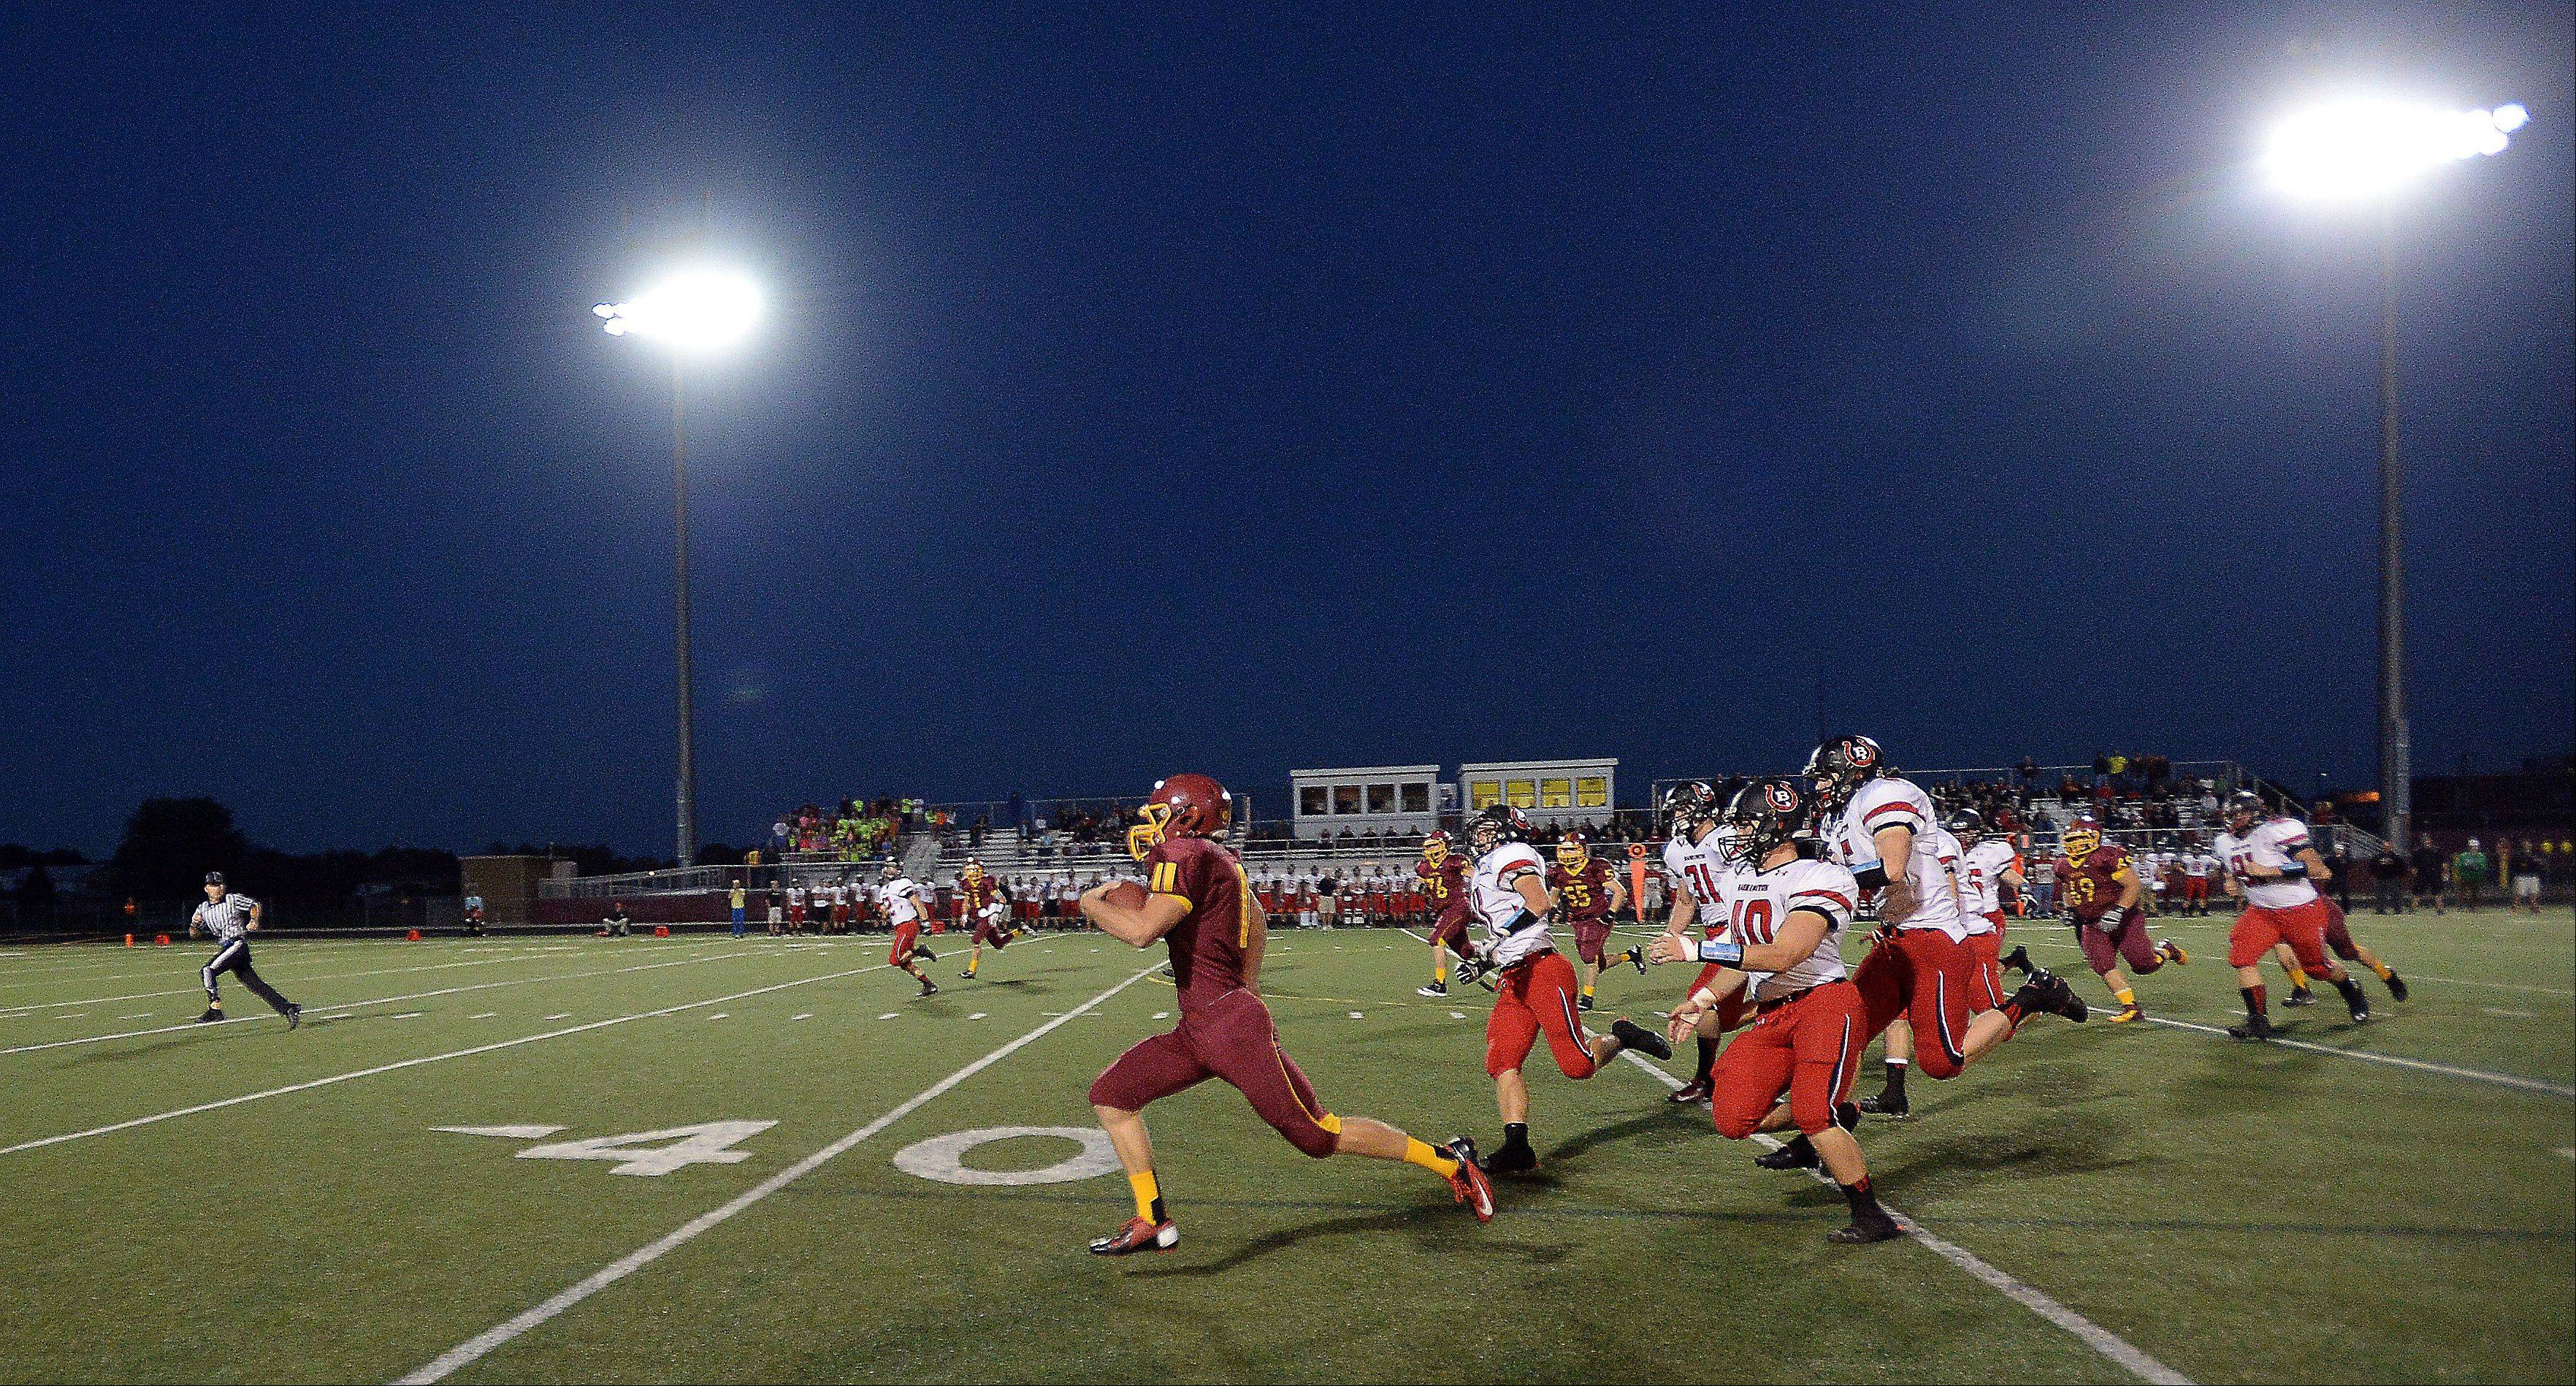 Schaumburg's Luke Gruszka completes a 62-yard touchdown run in the first quarter.